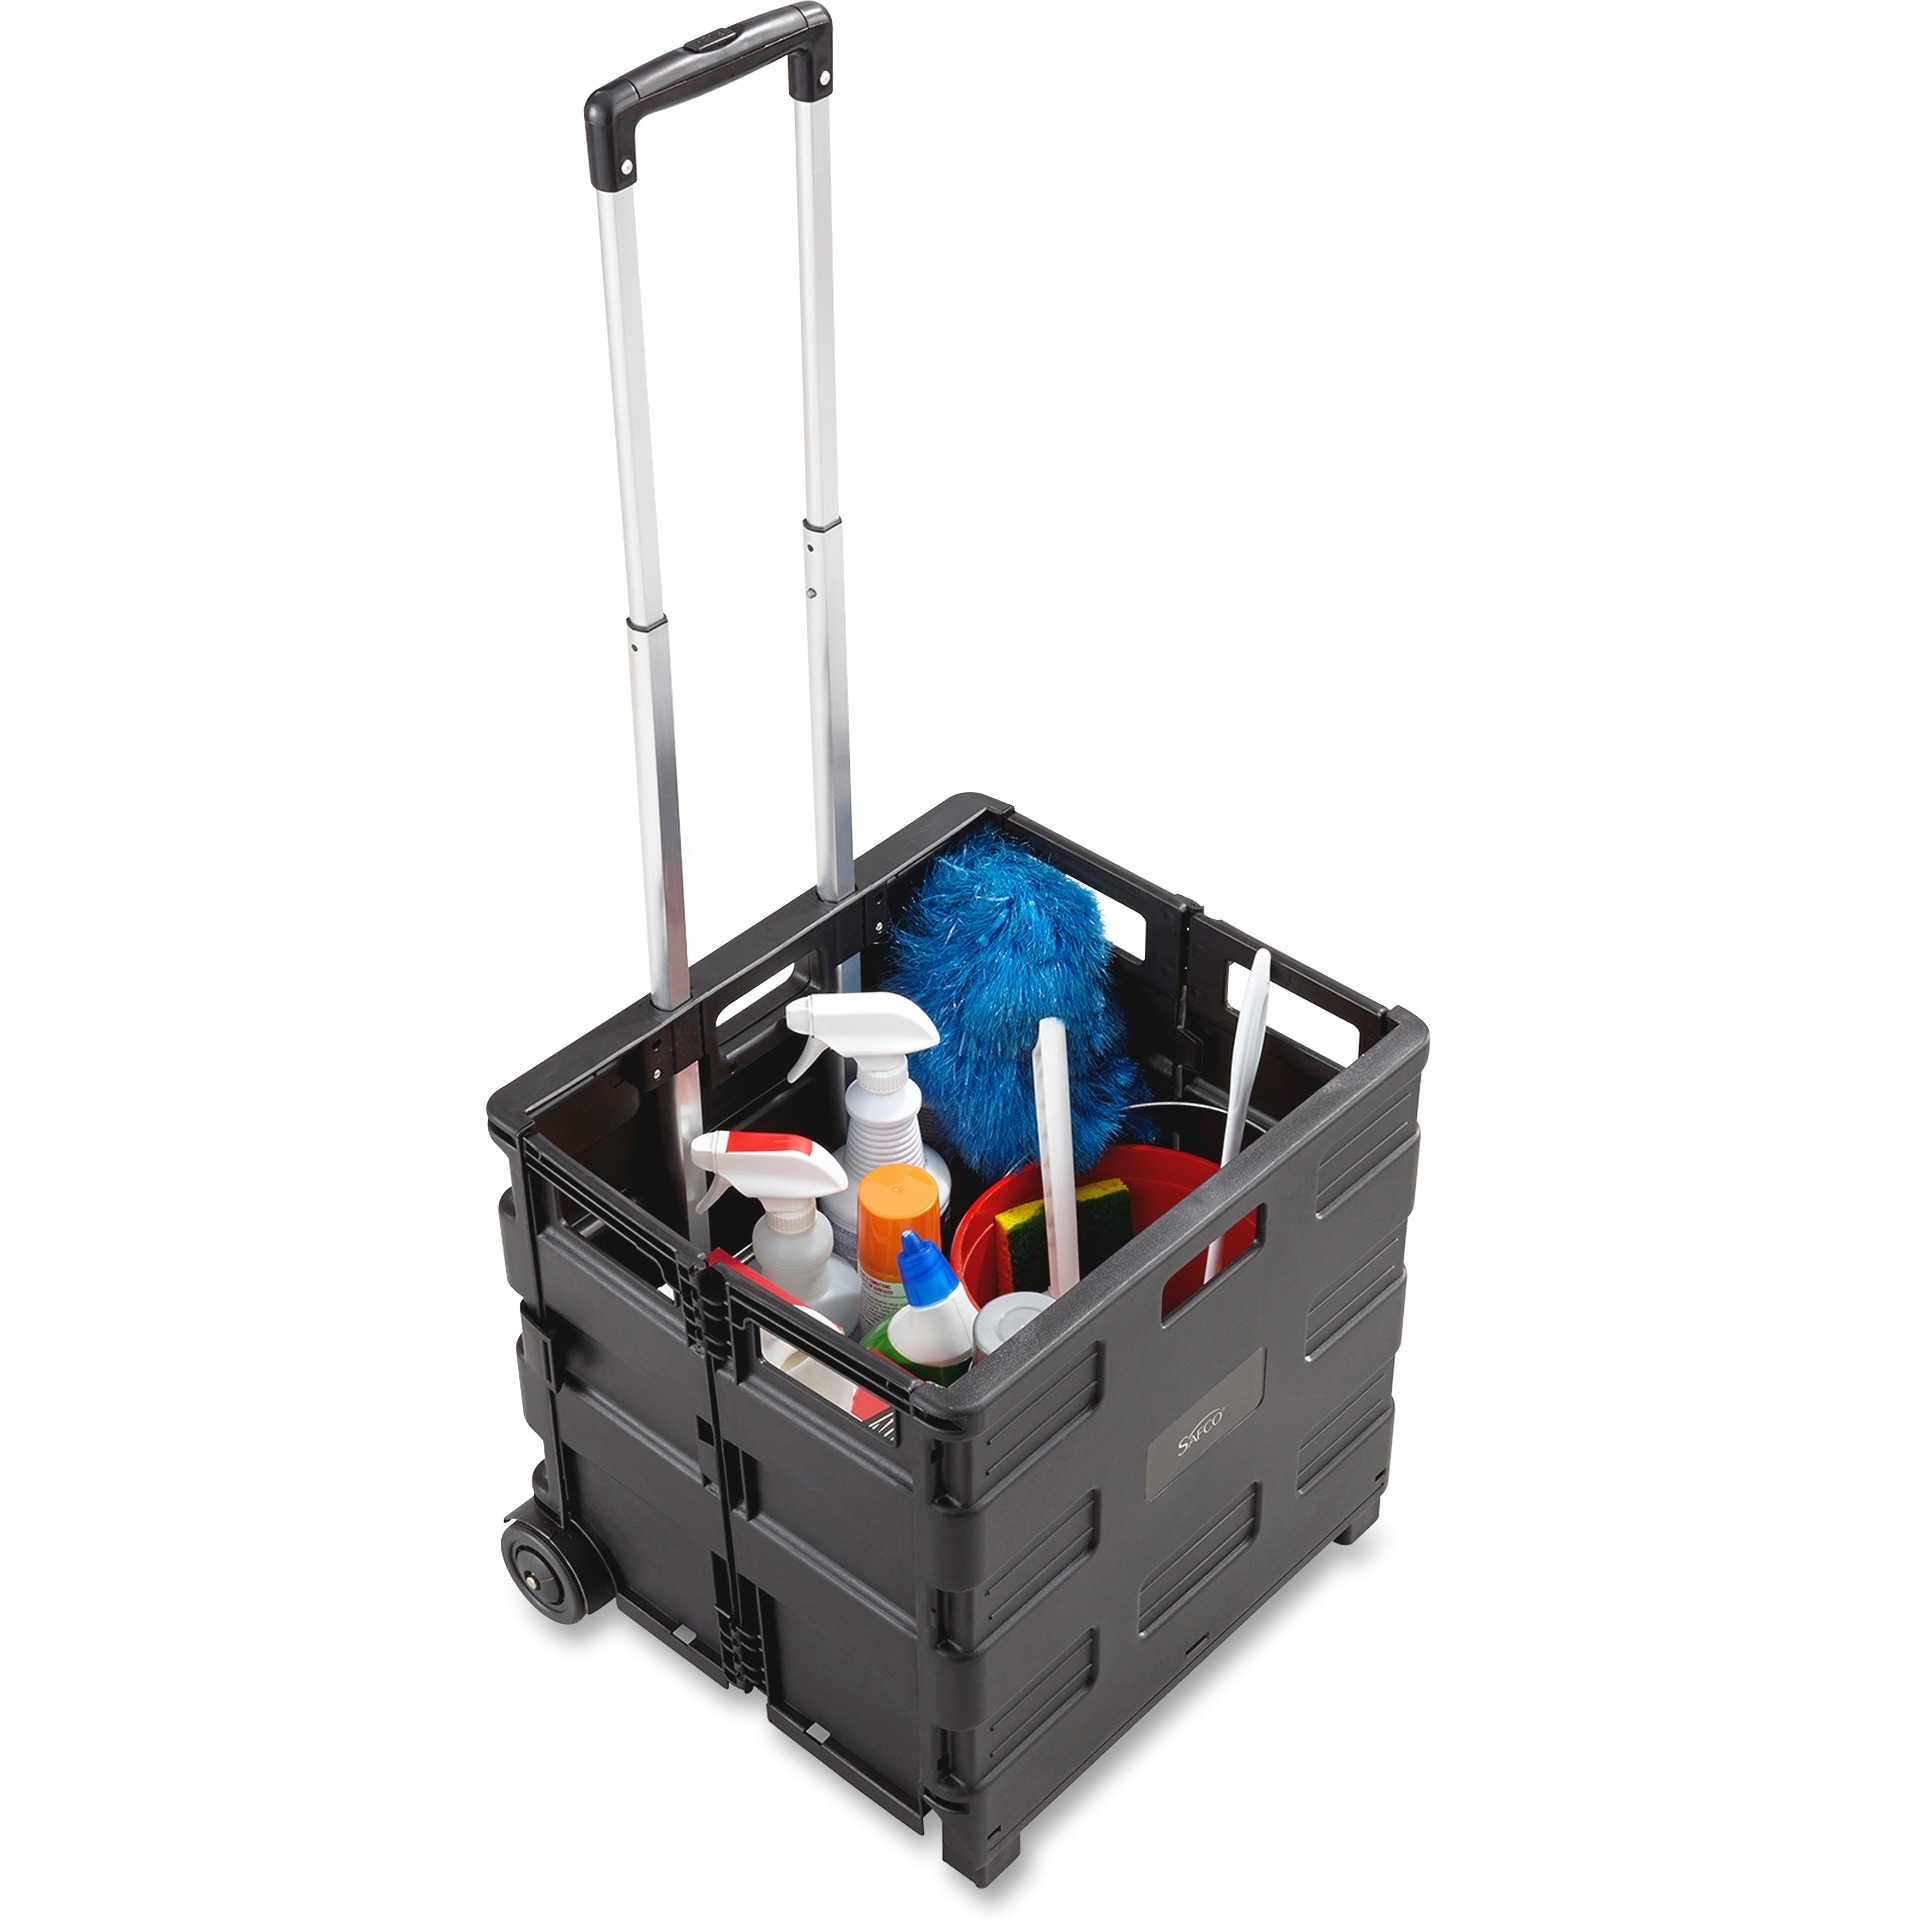 Safco, SAF4054BL, Stow Away Folding Caddy, 1 Each, Black,Silver